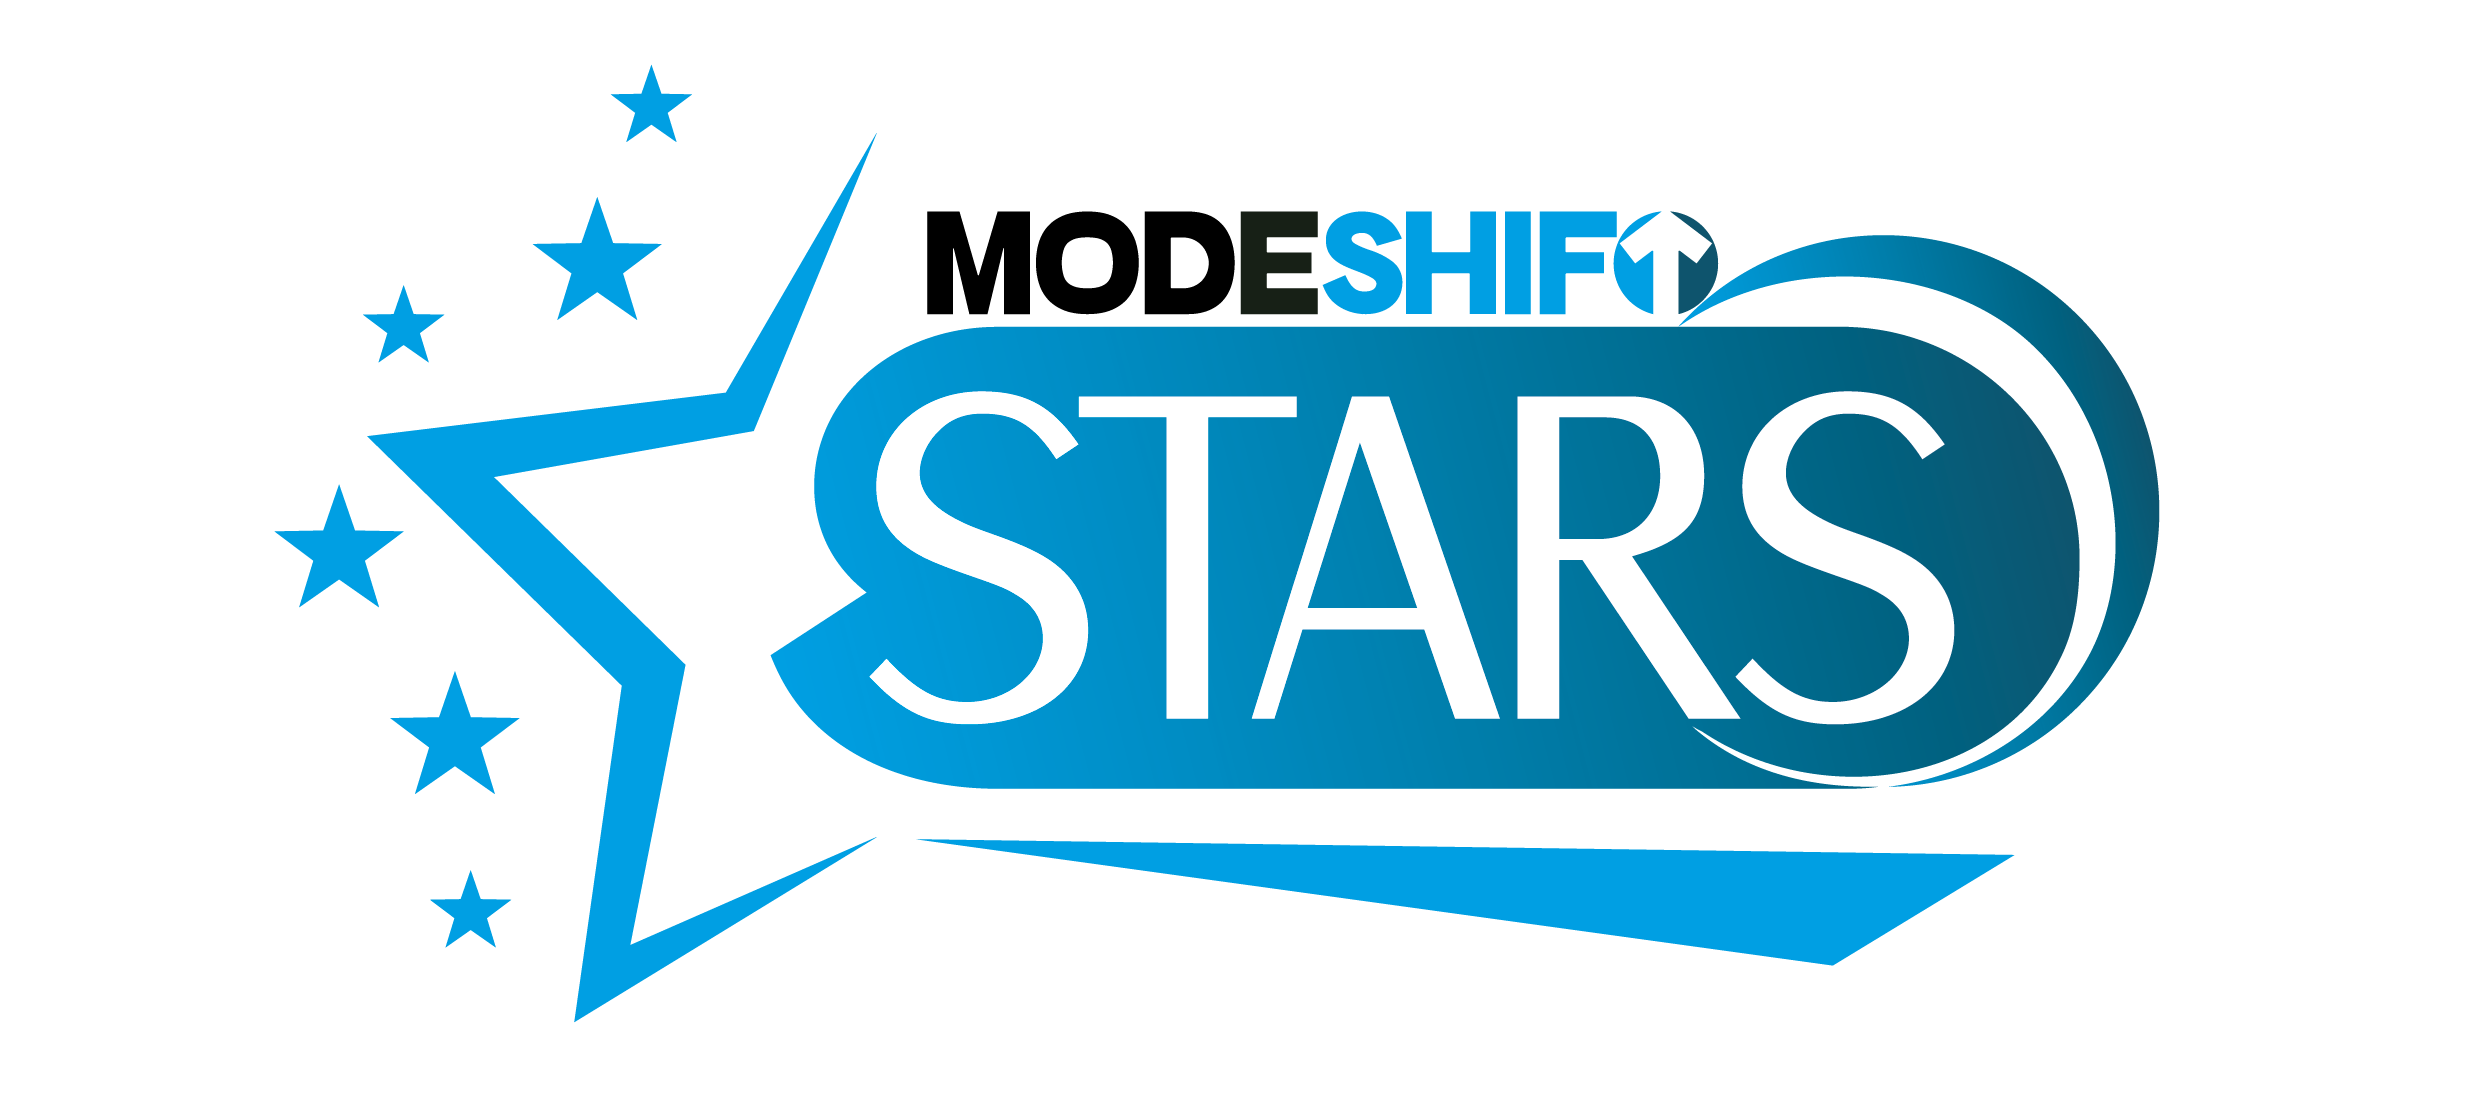 Modeshift STARS - Travel Plan in Education, Business & Communities